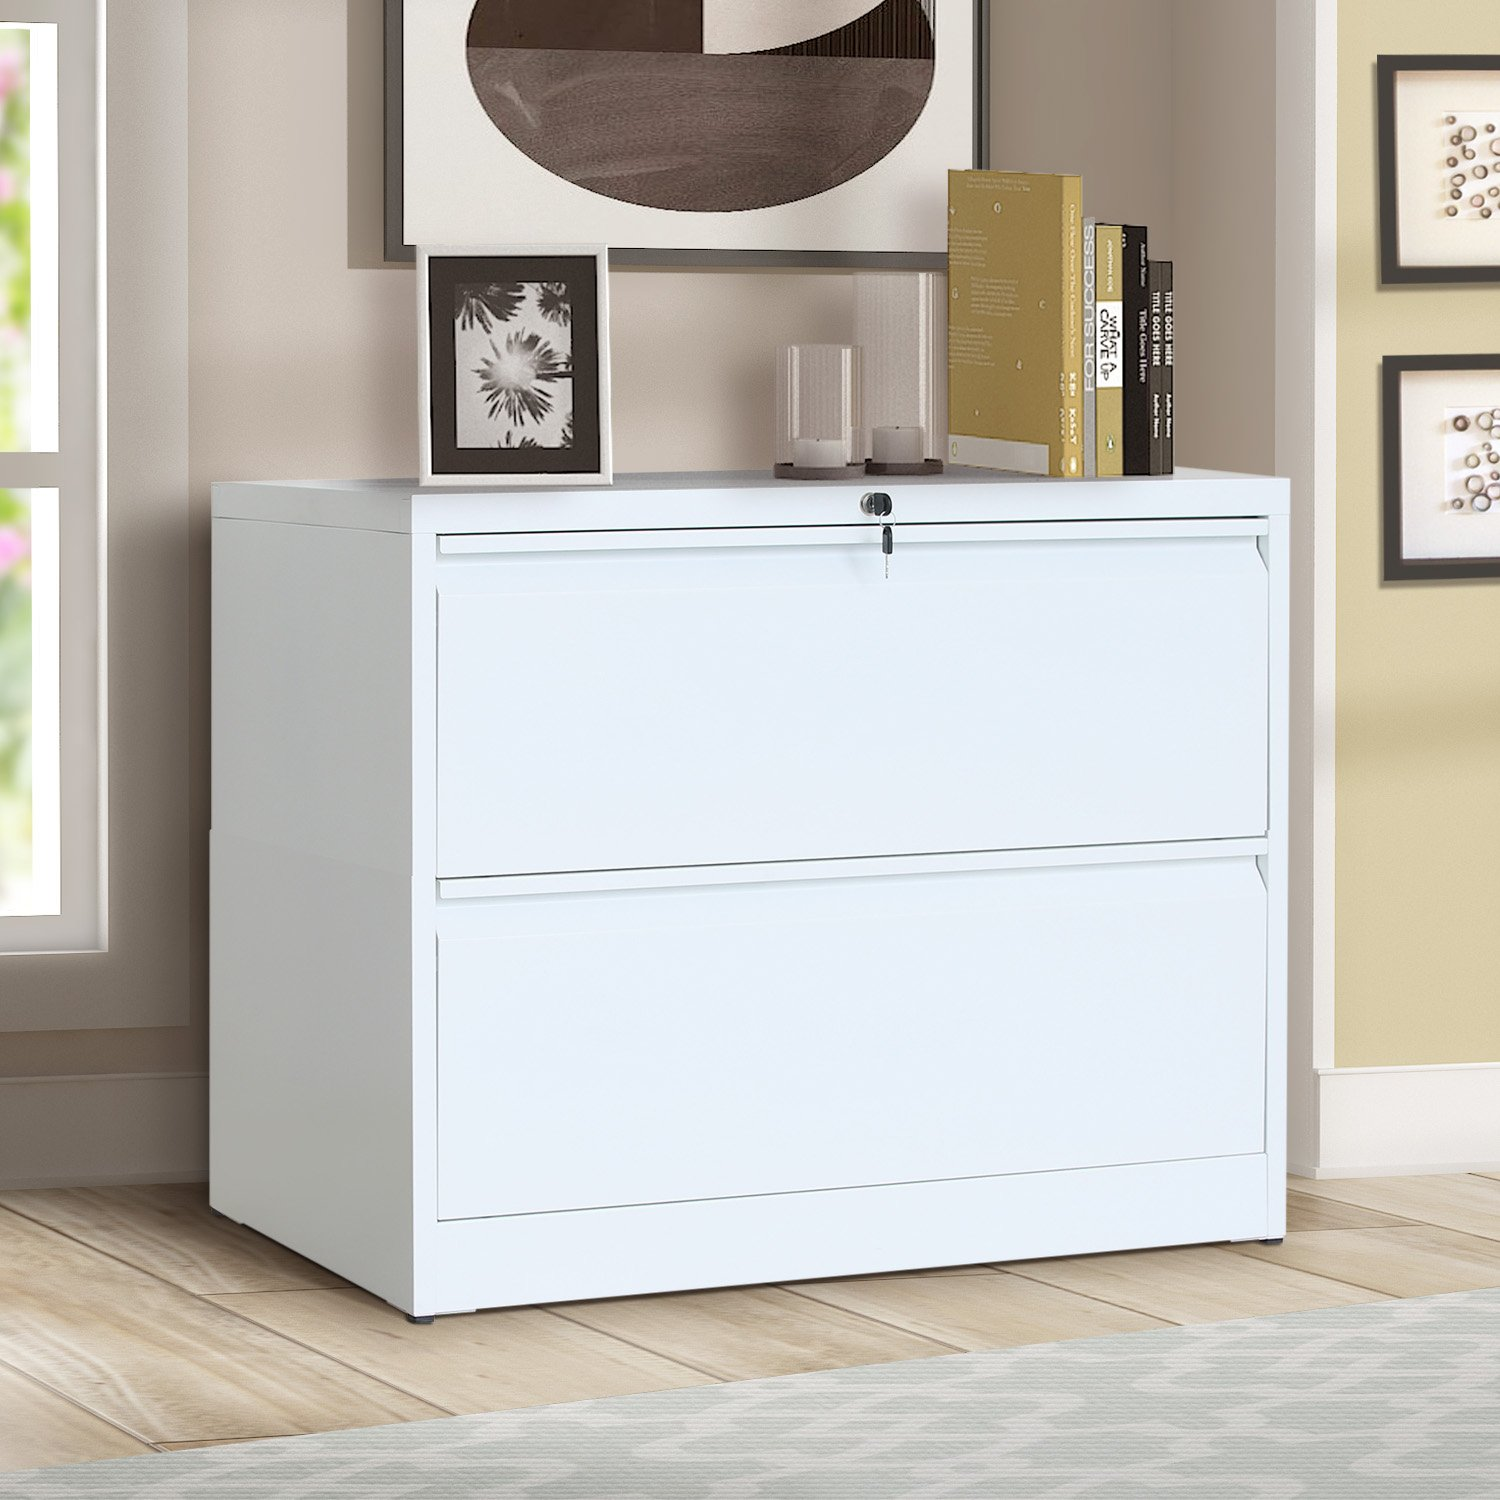 ModernLuxe Lateral File Cabinet 2-Drawer with Lock and Key (White)